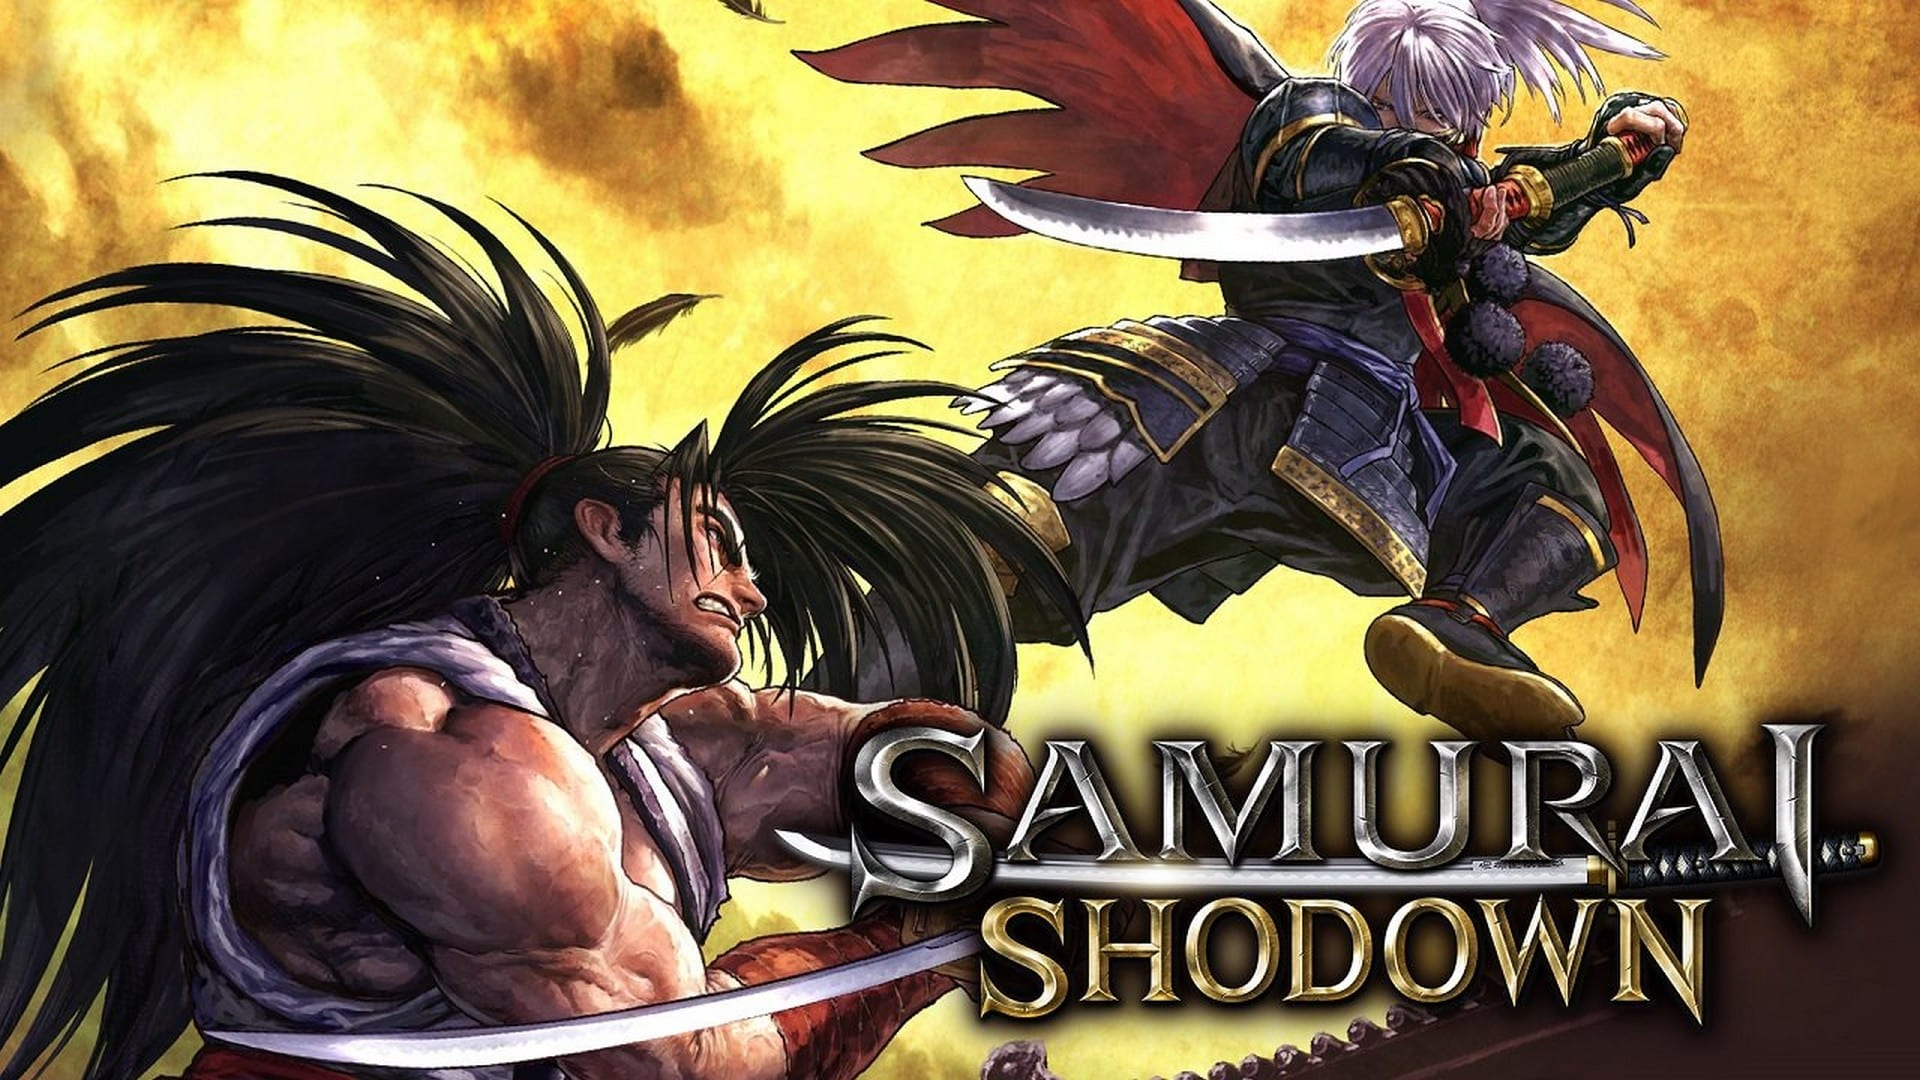 The Weapon-Based Fighter Samurai Shodown Is Out Now On Nintendo Switch